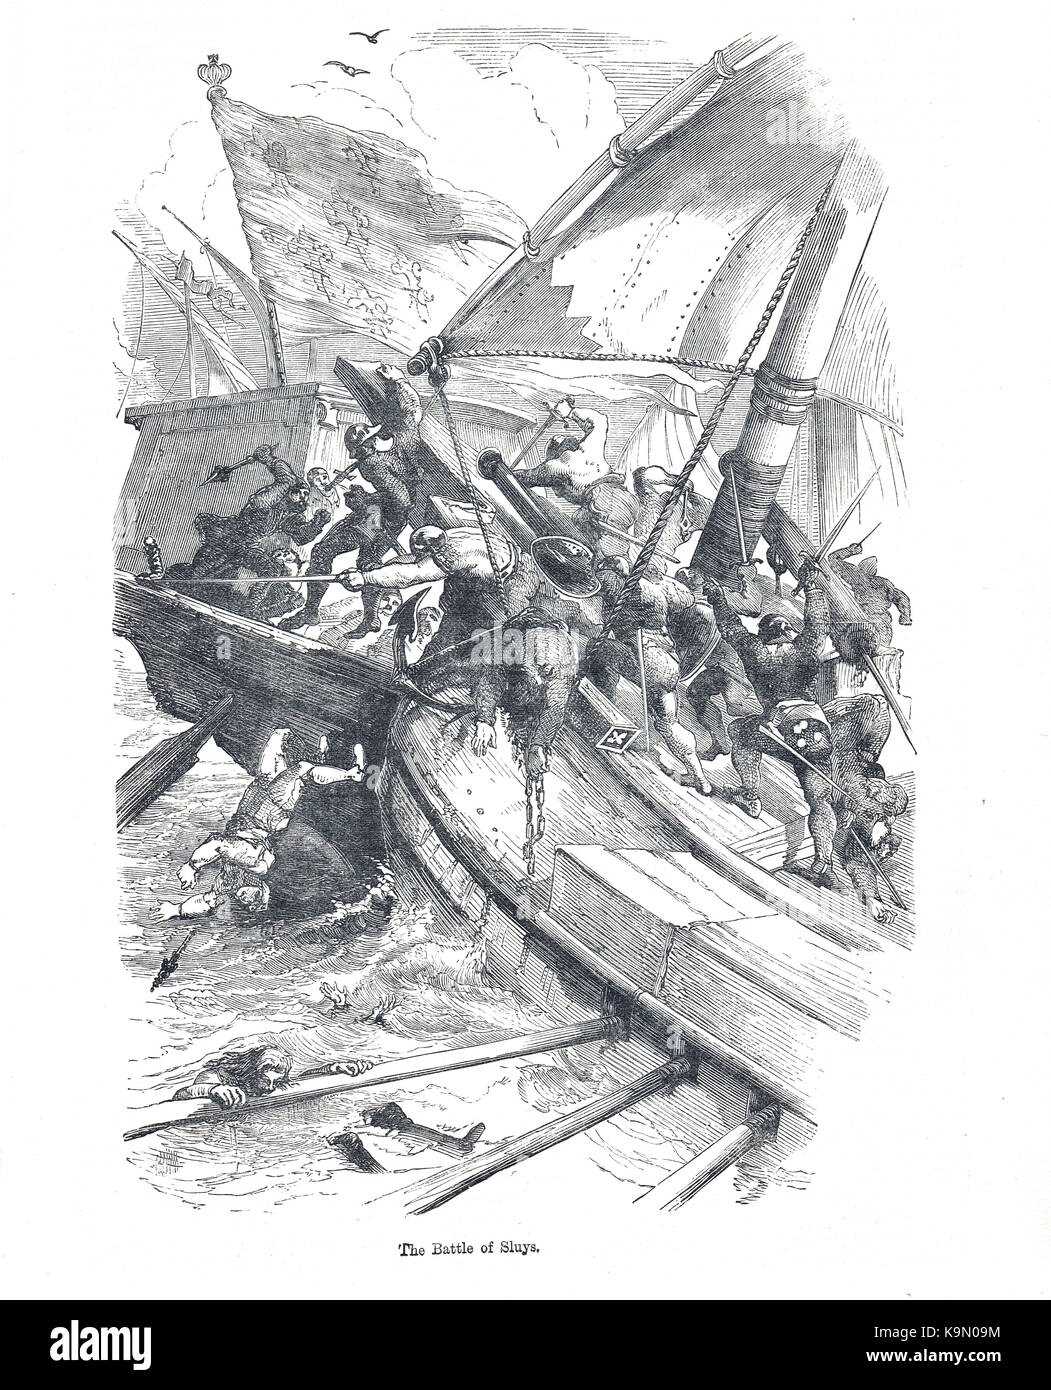 The Battle of Sluys, 24 June 1340.  Sea battle fought between England and France, one of the opening conflicts of - Stock Image